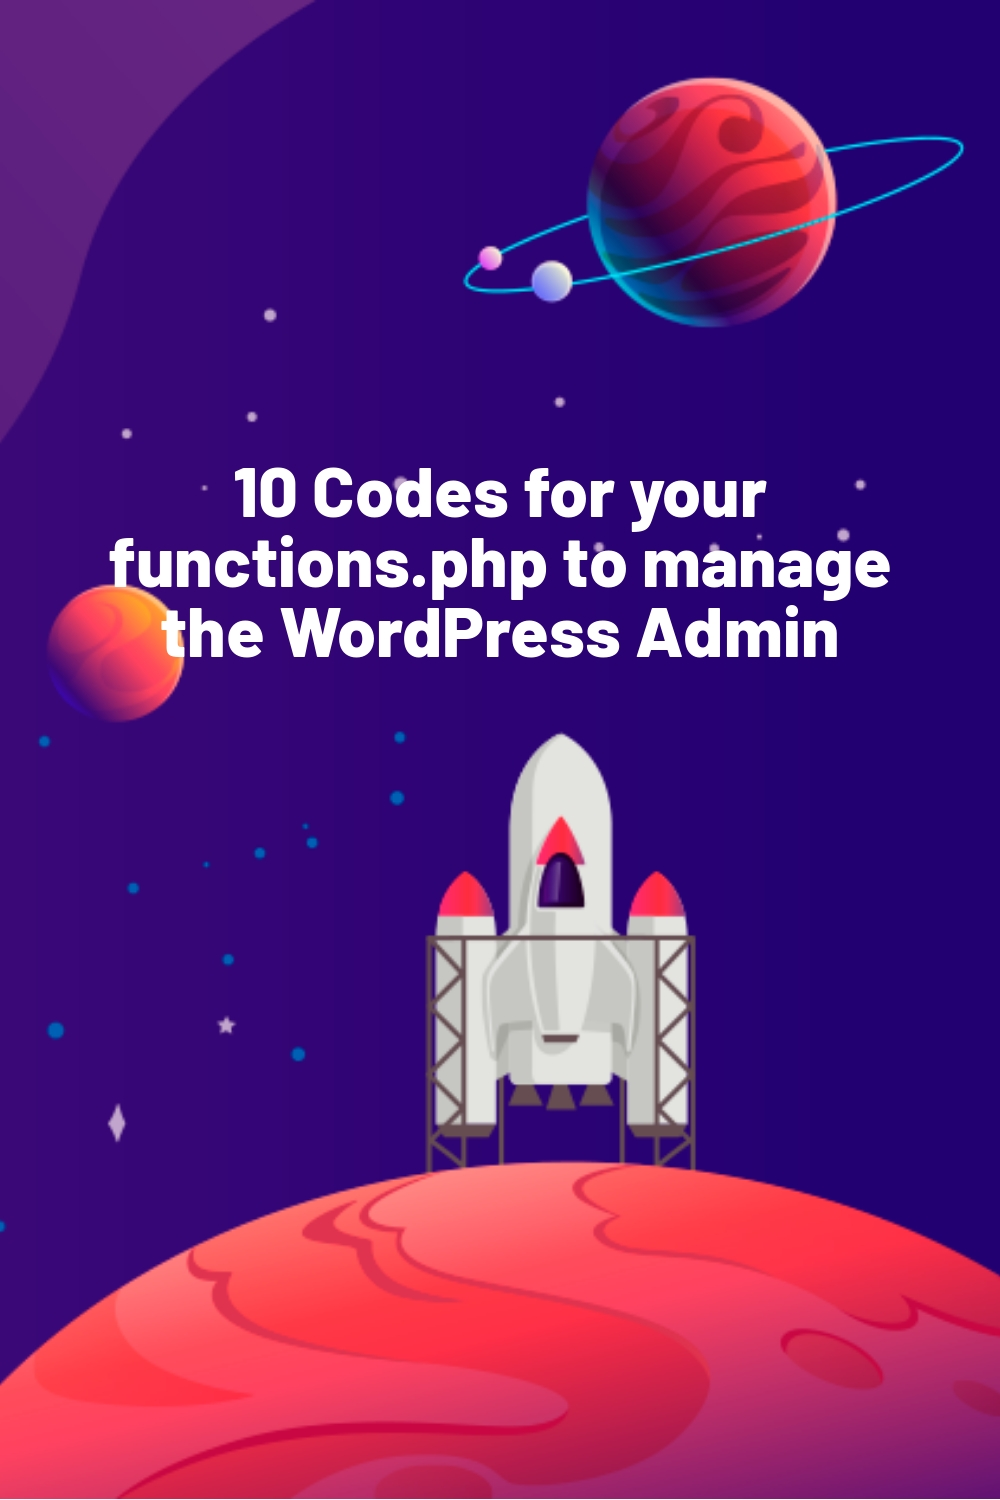 10 Codes for your functions.php to manage the WordPress Admin